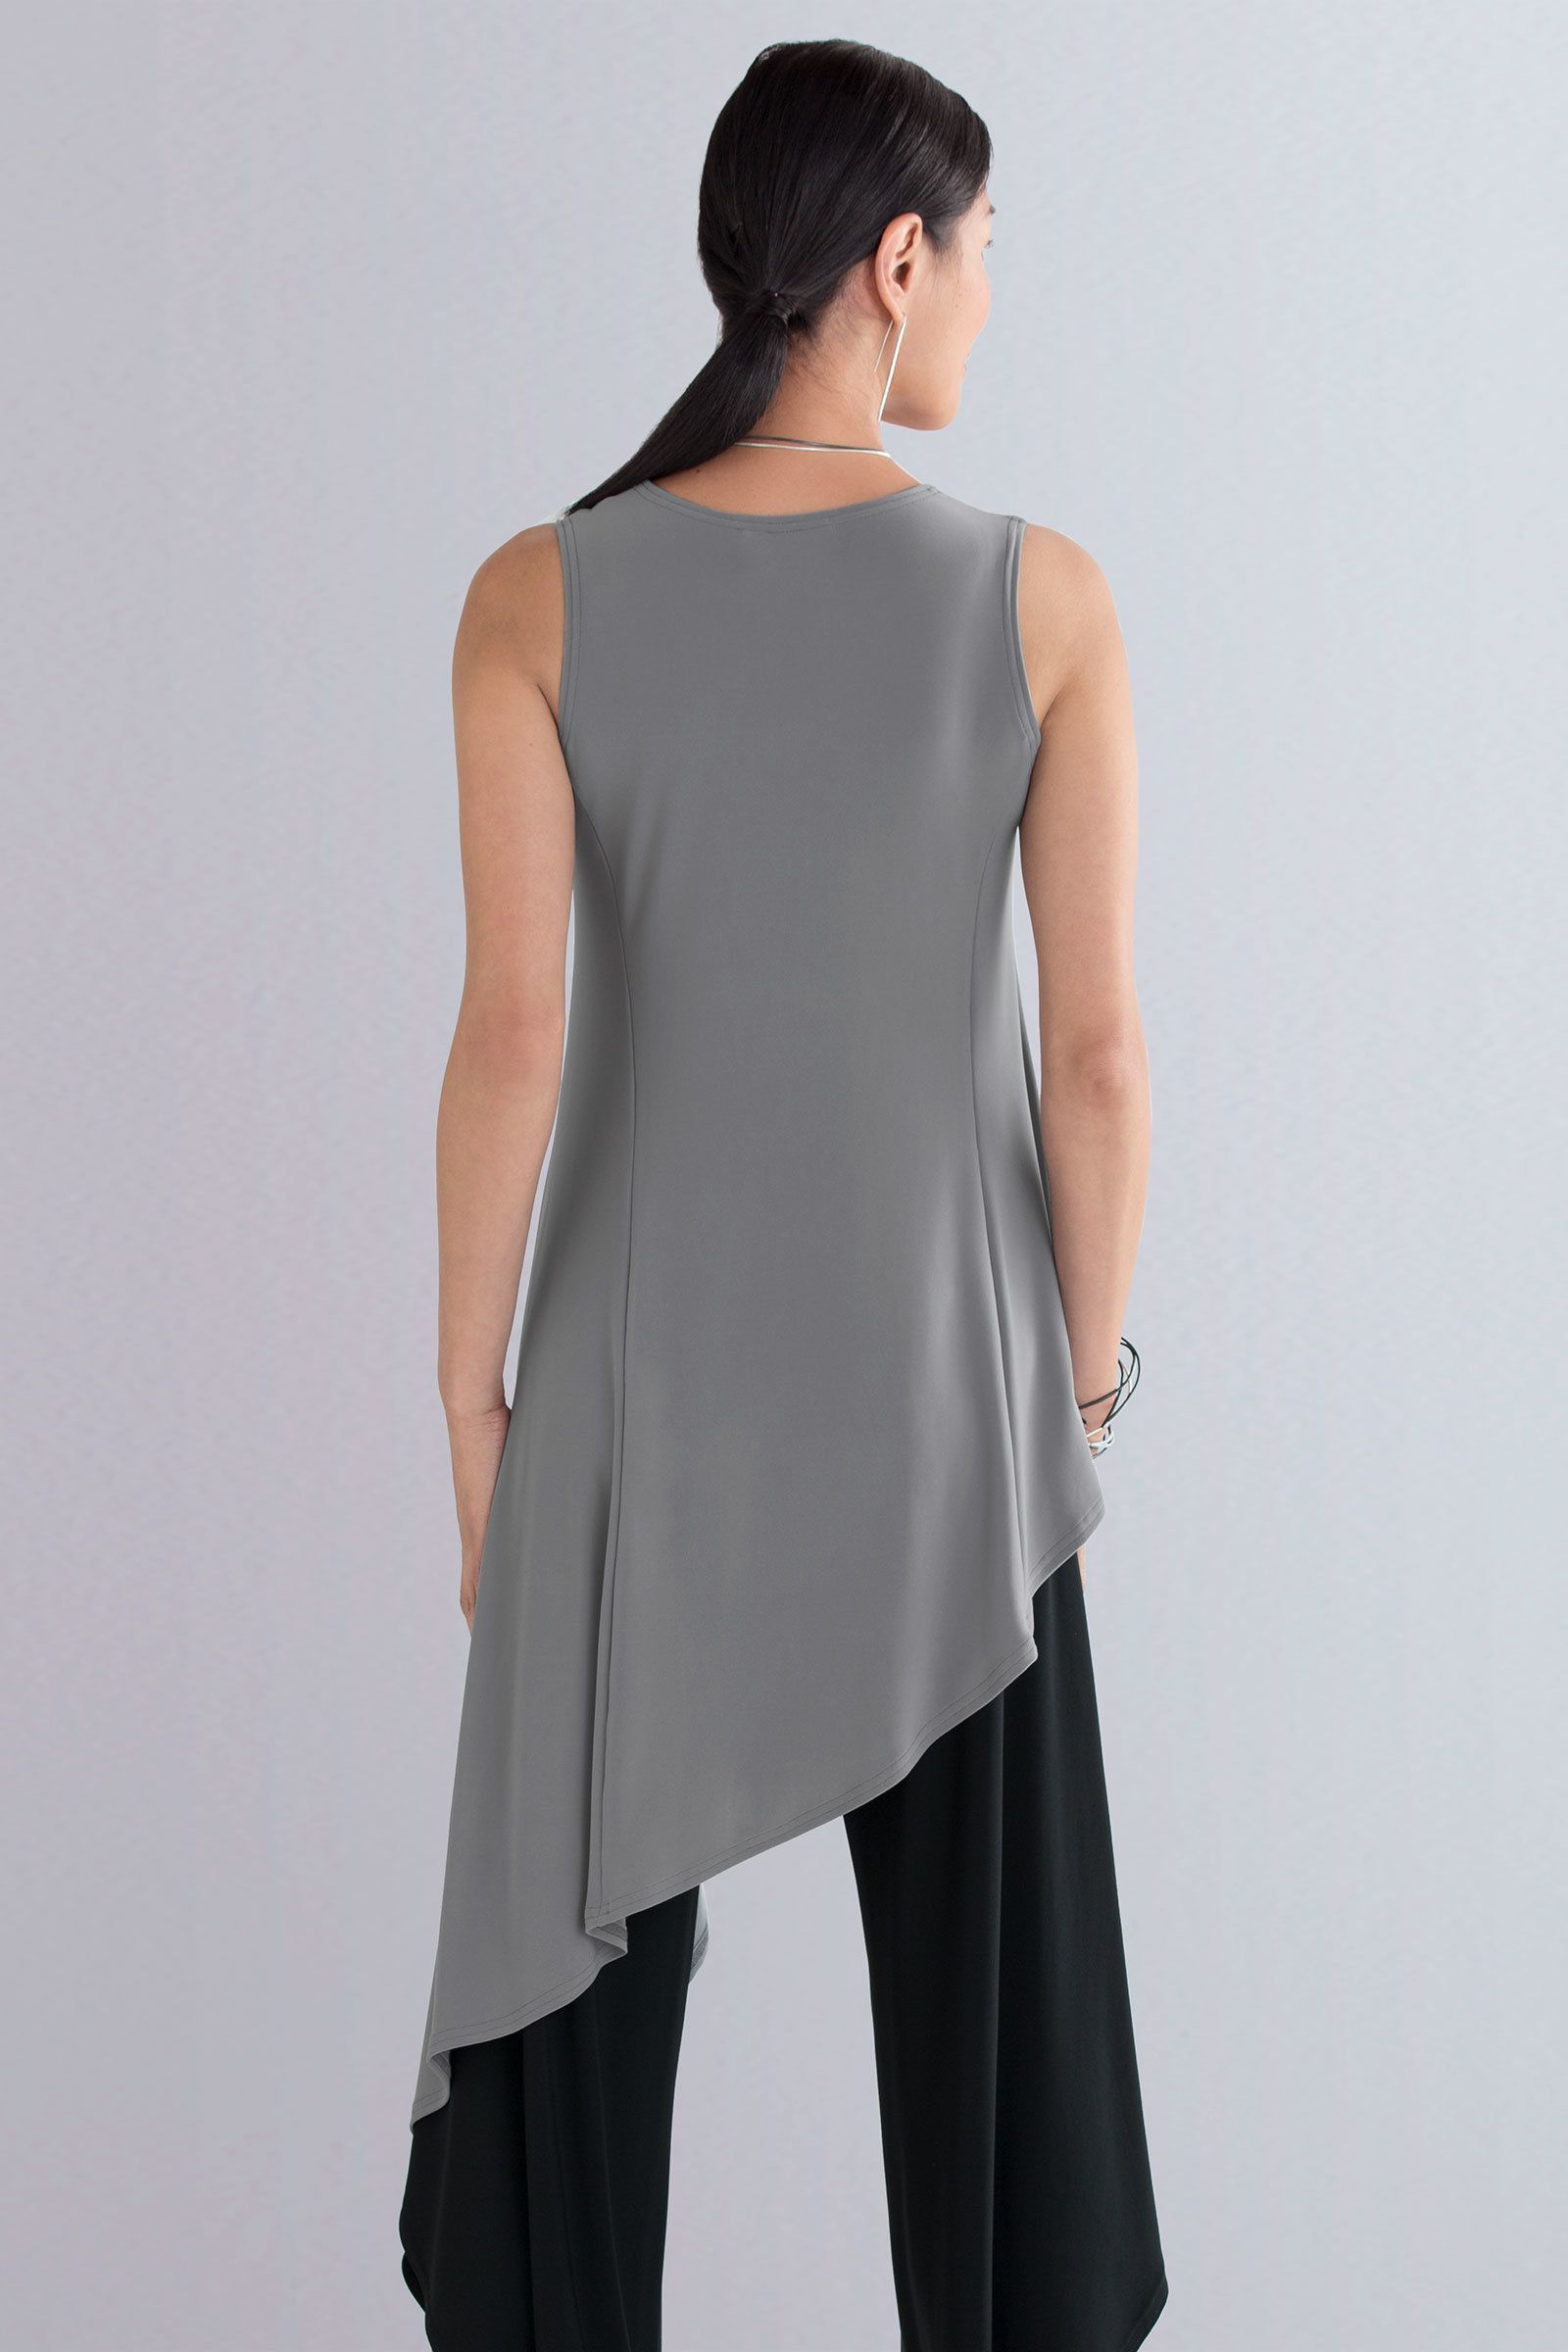 Drifter Tunic by Sympli . Drama and elegance combine in a swingy tunic with an asymmetrical hem that cascades to a long side point.